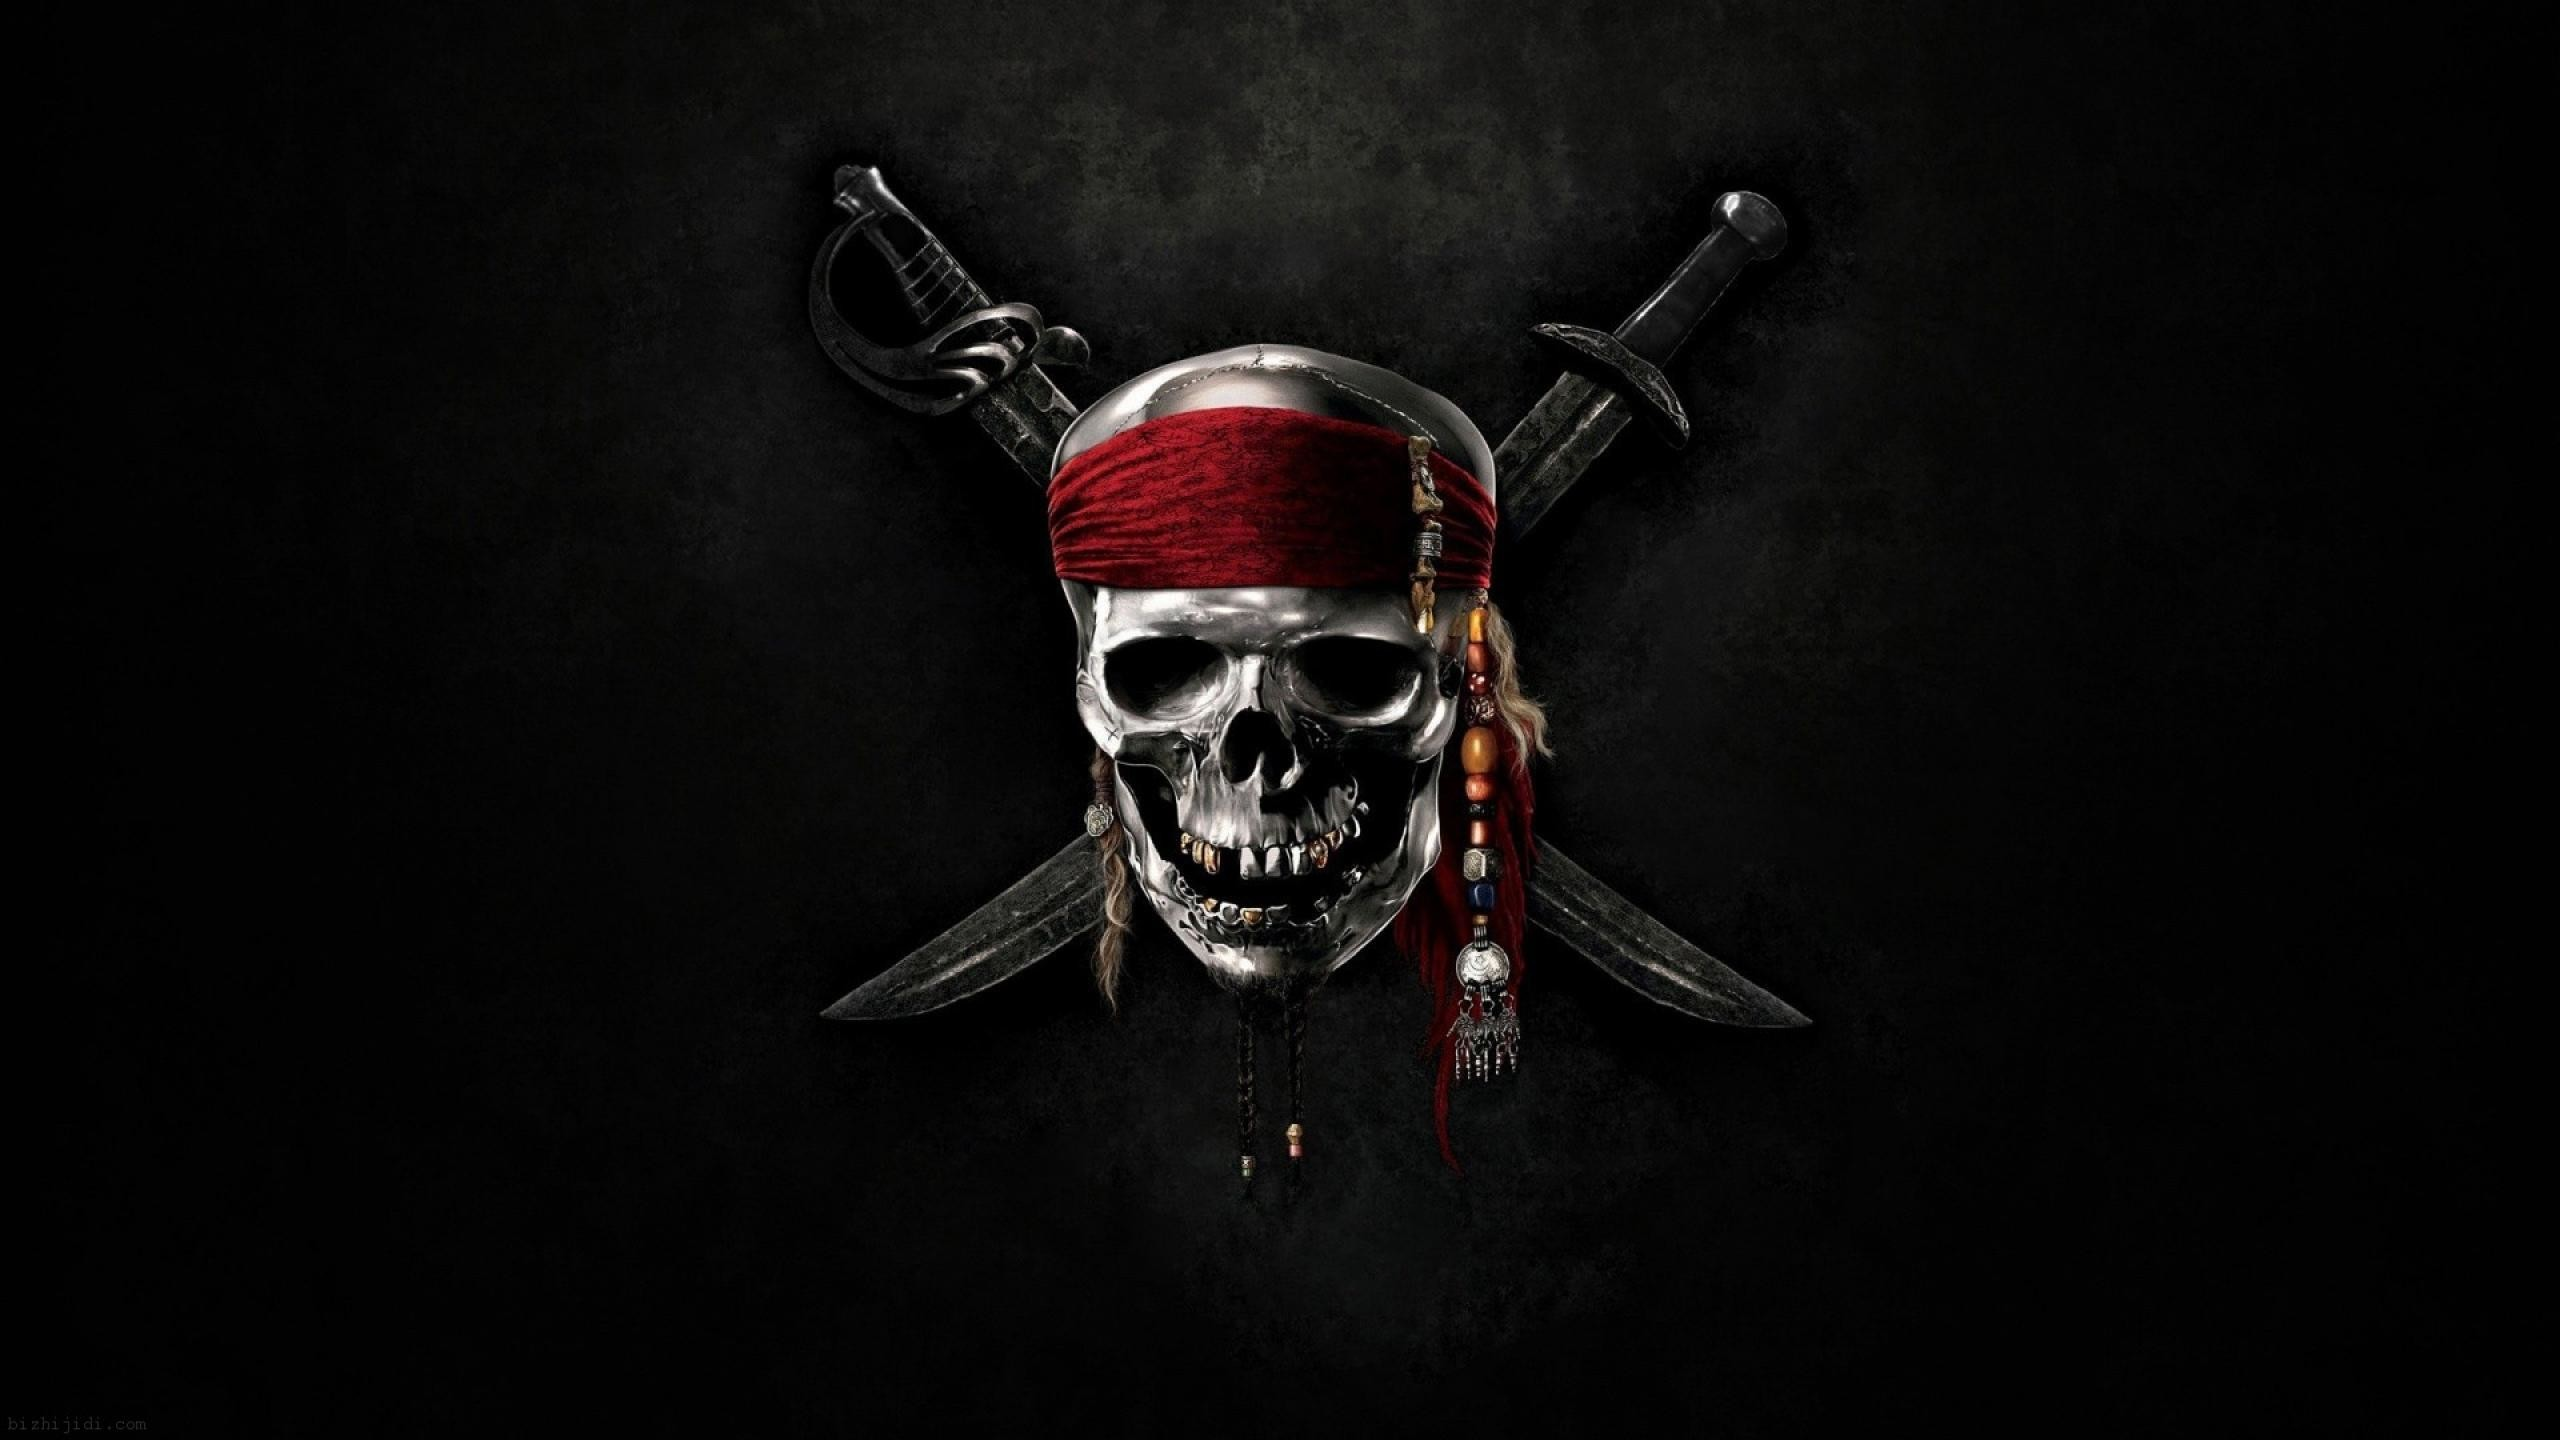 Cool HD Skull Wallpapers (47 Wallpapers)